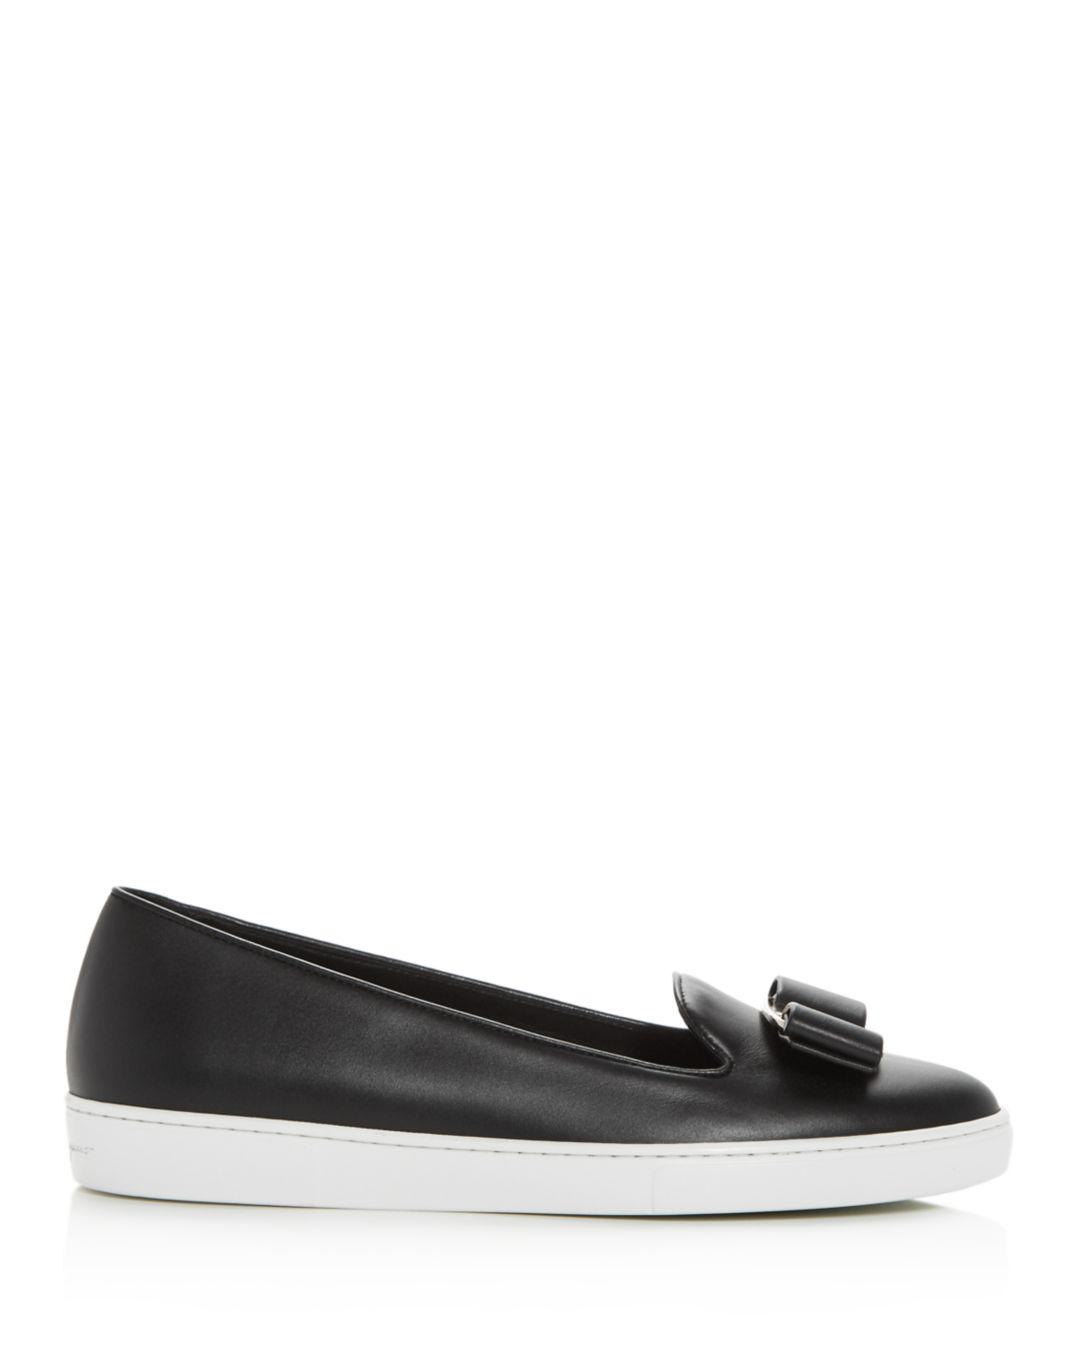 fe1e8264386dd Lyst - Ferragamo Women s Novello Slip-on Sneakers in Black